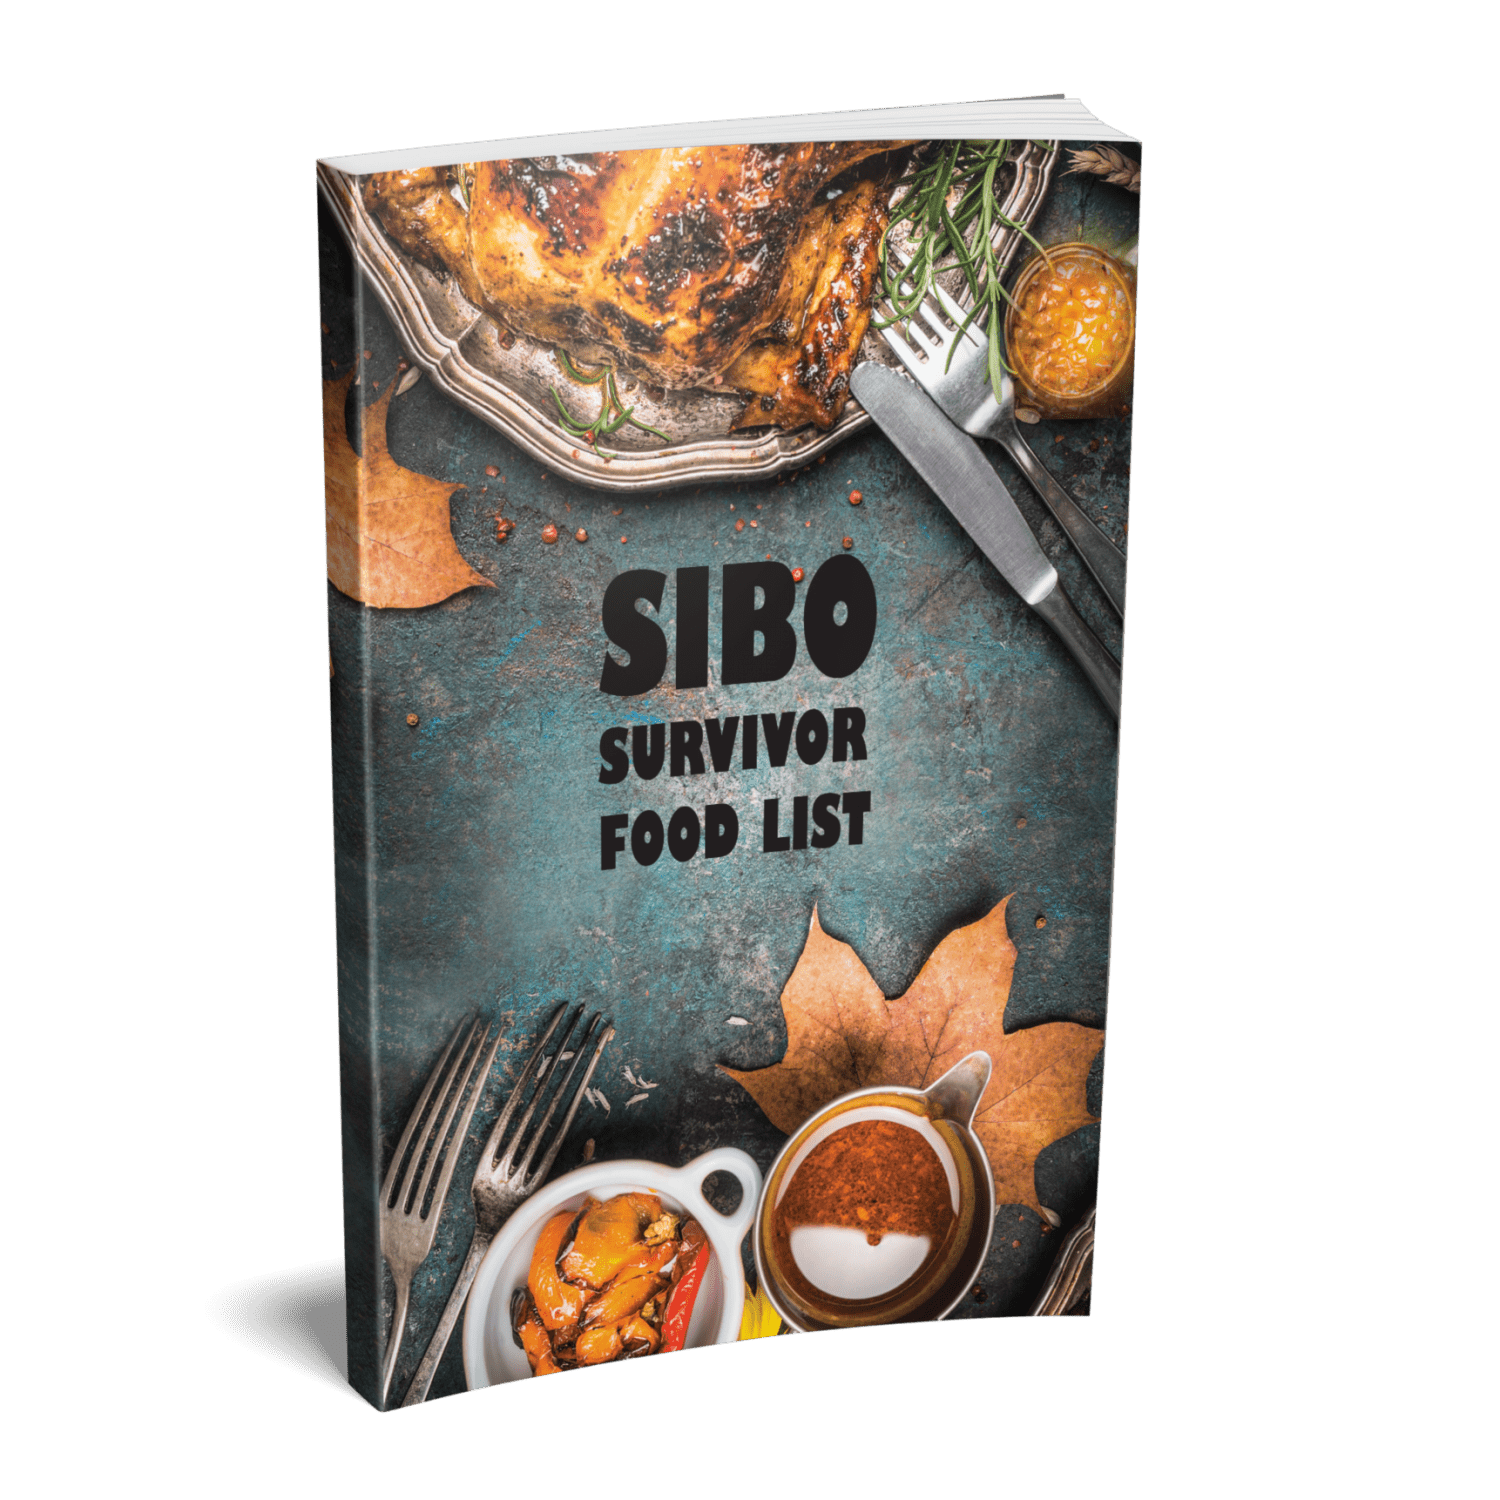 Sibo Diet Foods To Eat Avoid For Symptom Relief Food List Included